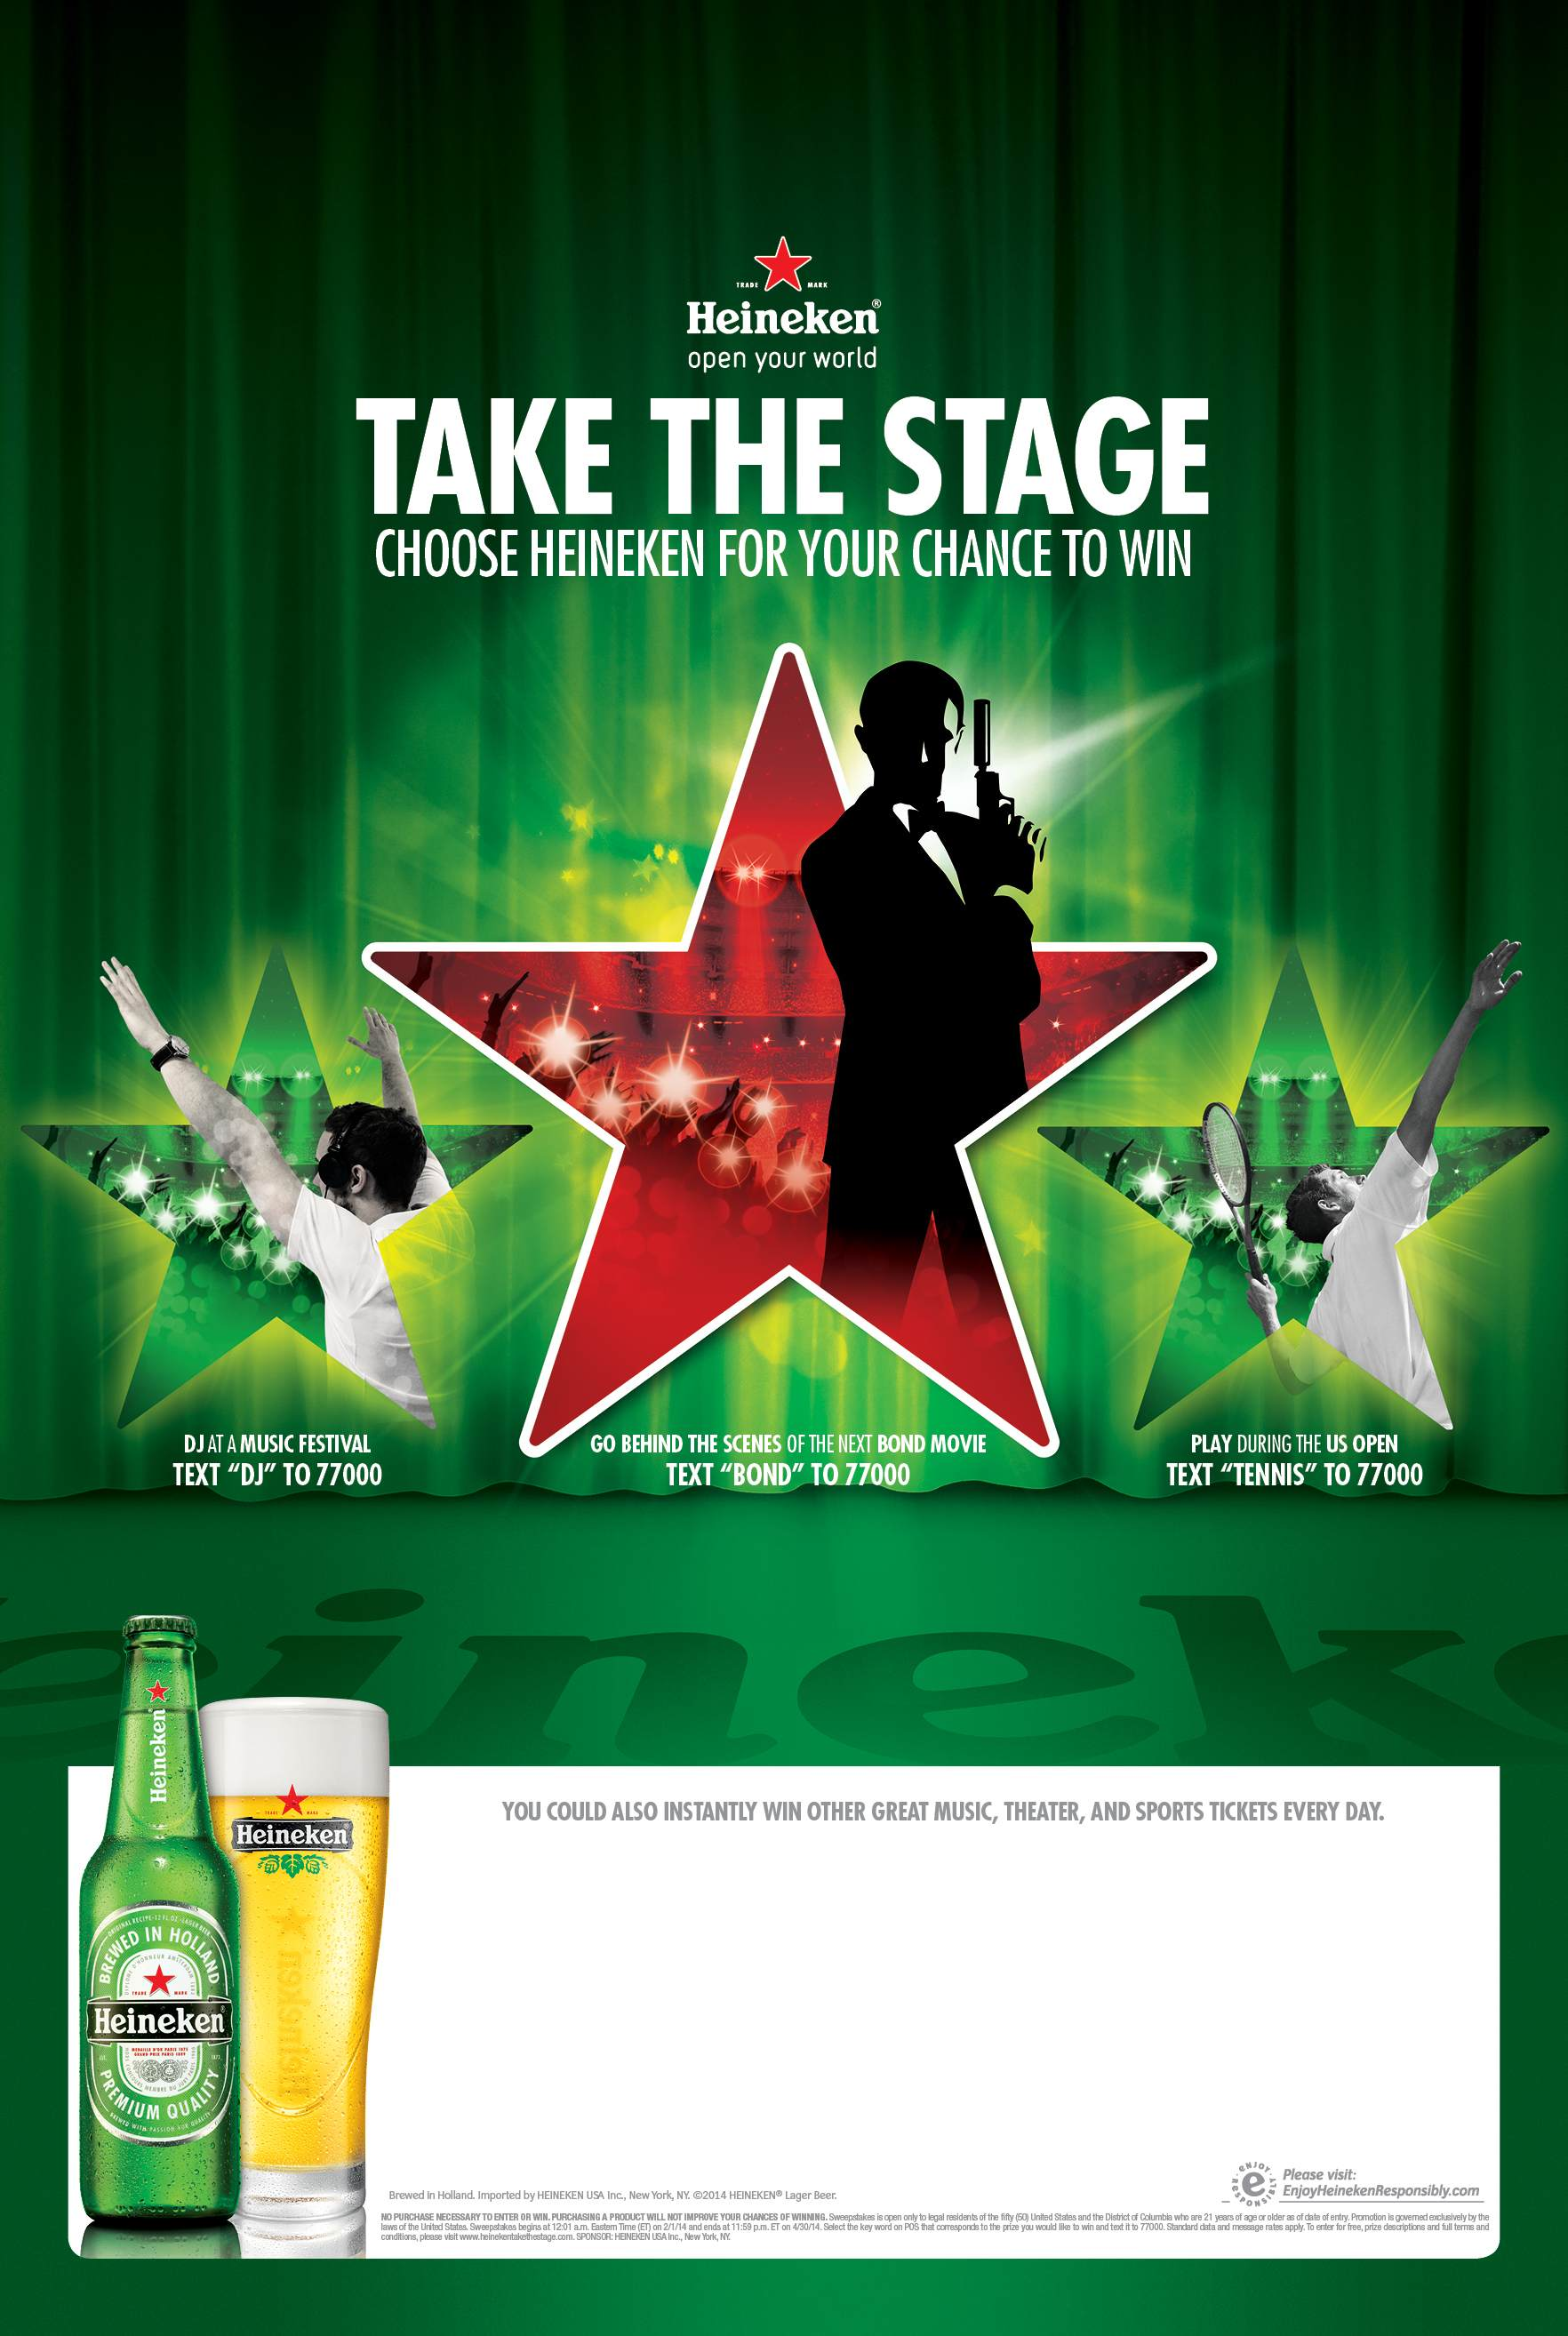 Heineken's Takes the Stage Campaign Kicks Off